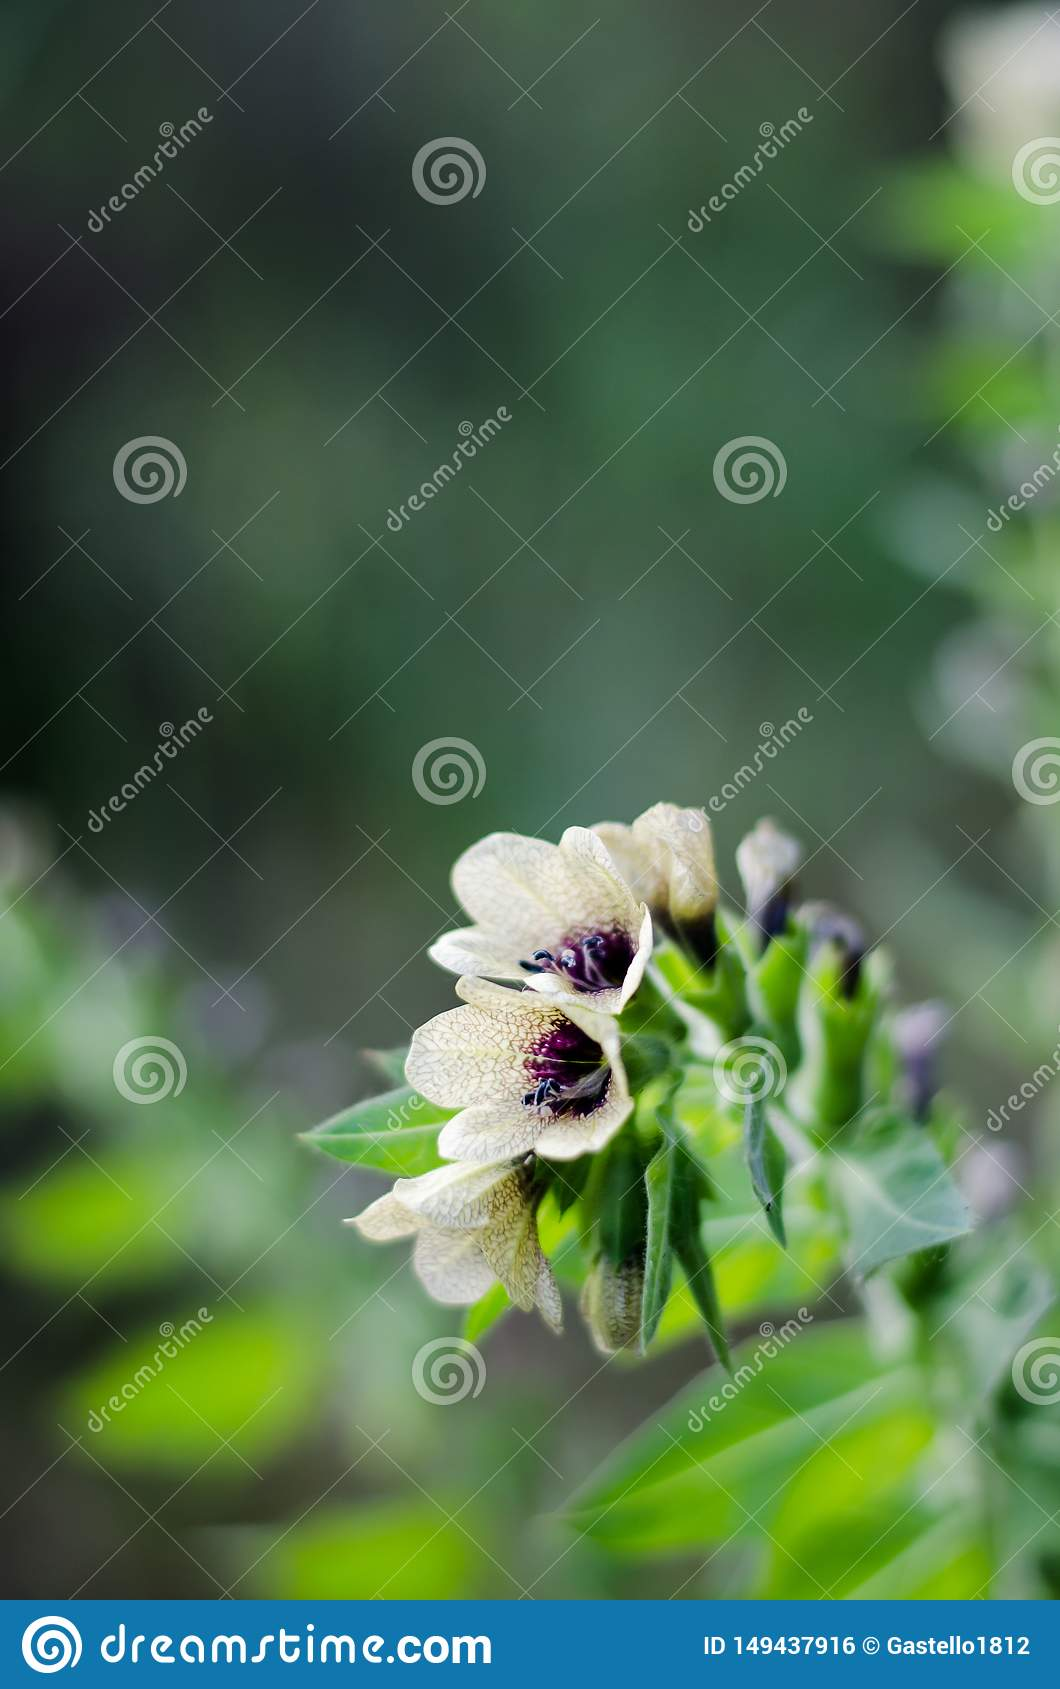 Light flowers of the bell with an unusual pattern on the petals. Texture pattern. Macro. Blurred Background